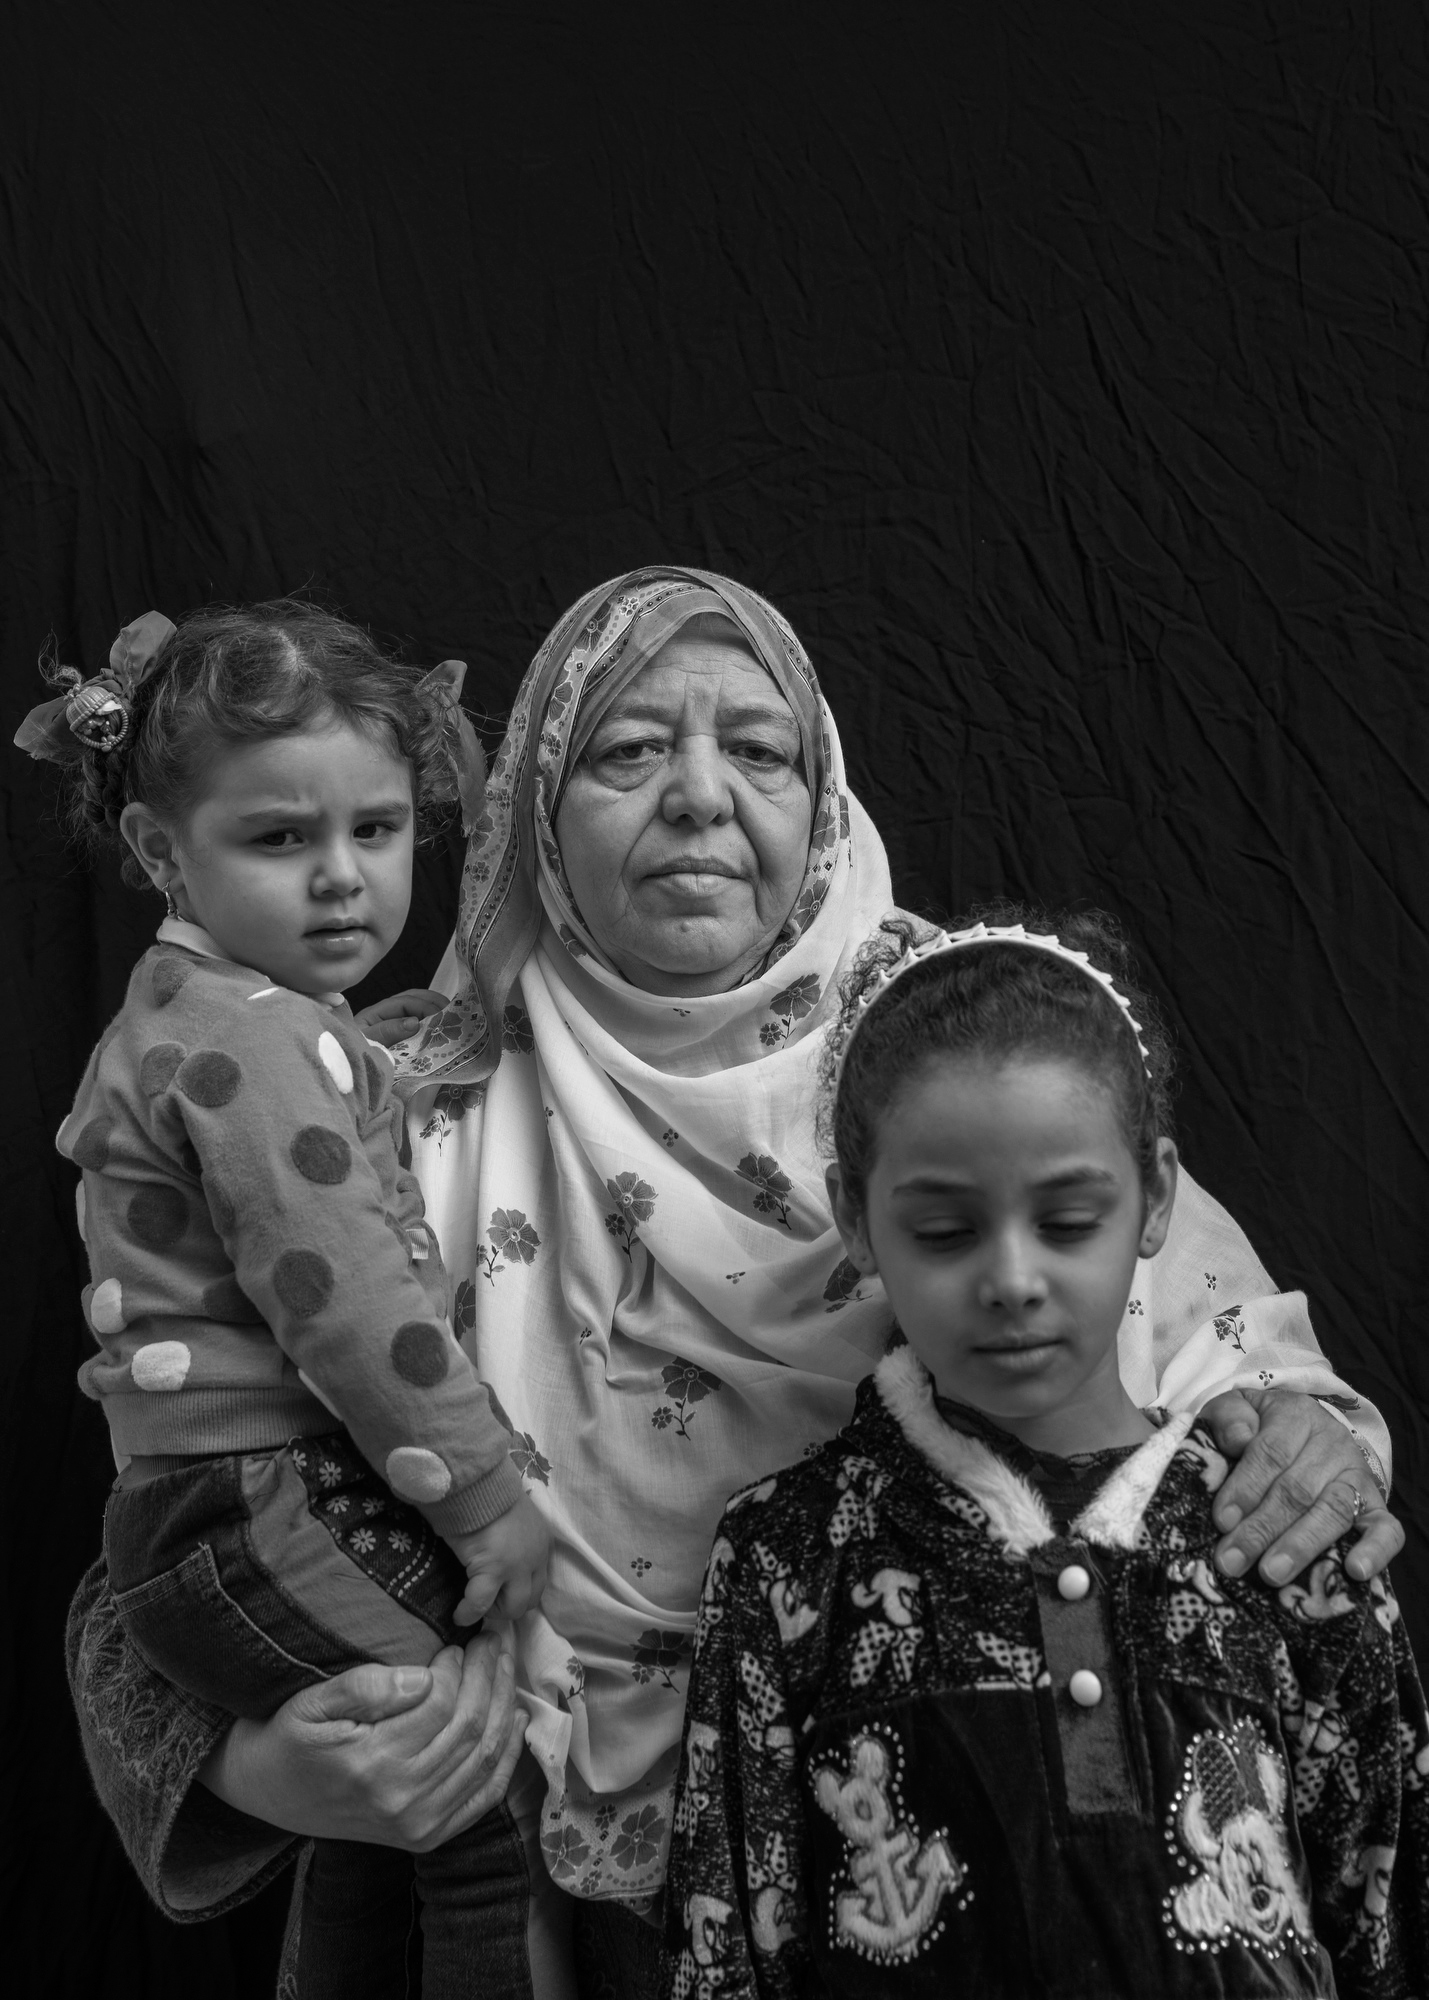 "Hawla Mahdi Salah, 67, poses for a portrait with her granddaughters Safae Khalid Adnan, 2, and Hawla Khalid Adnan, 9, in Mosul, Iraq. On June 26, 2017, an airstrike destroyed their home while they were inside. Salah lost nine family members in the blast, including two sons and three grandchildren, leaving her to care for Safae and Hawla who were orphaned, along with six other grandchildren. ""Only Allah knows if the Old City will be rebuilt,  she says."